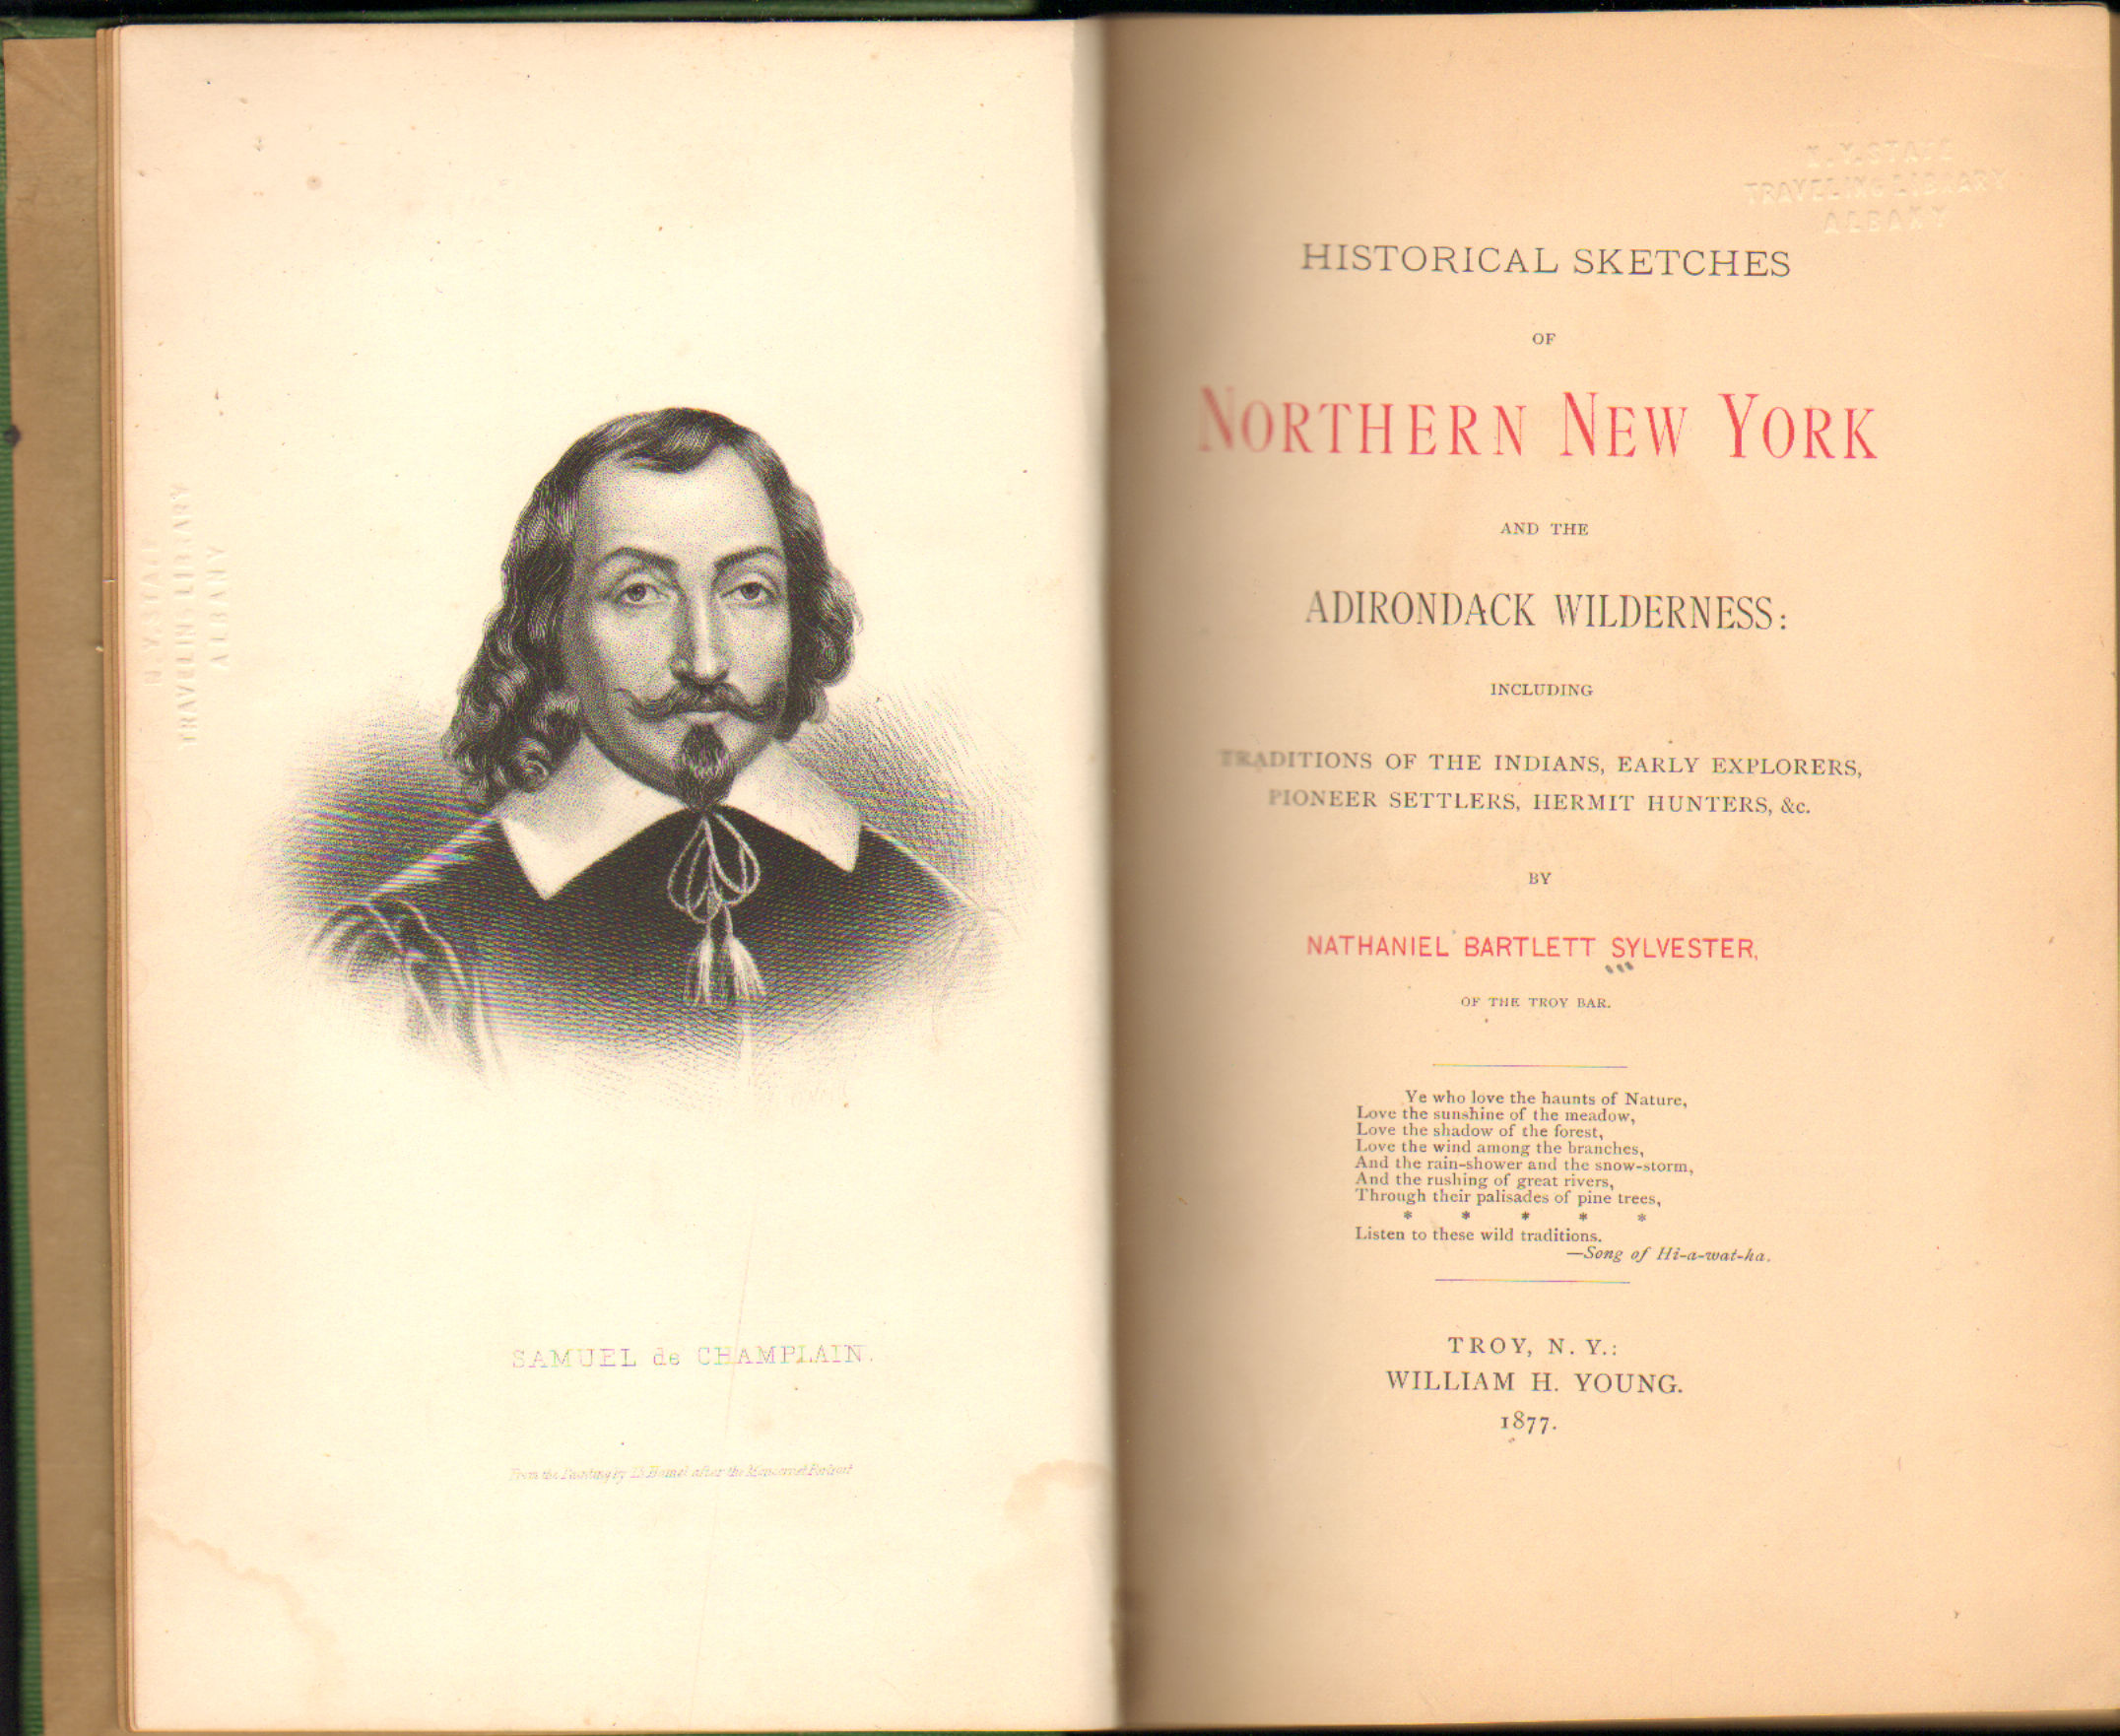 Image for Historical Sketches Of Northern New York And The Adirondack Wilderness: Including Traditions Of The Indians Early Explorers Pioneer Settlers Hermit Hunters &c.